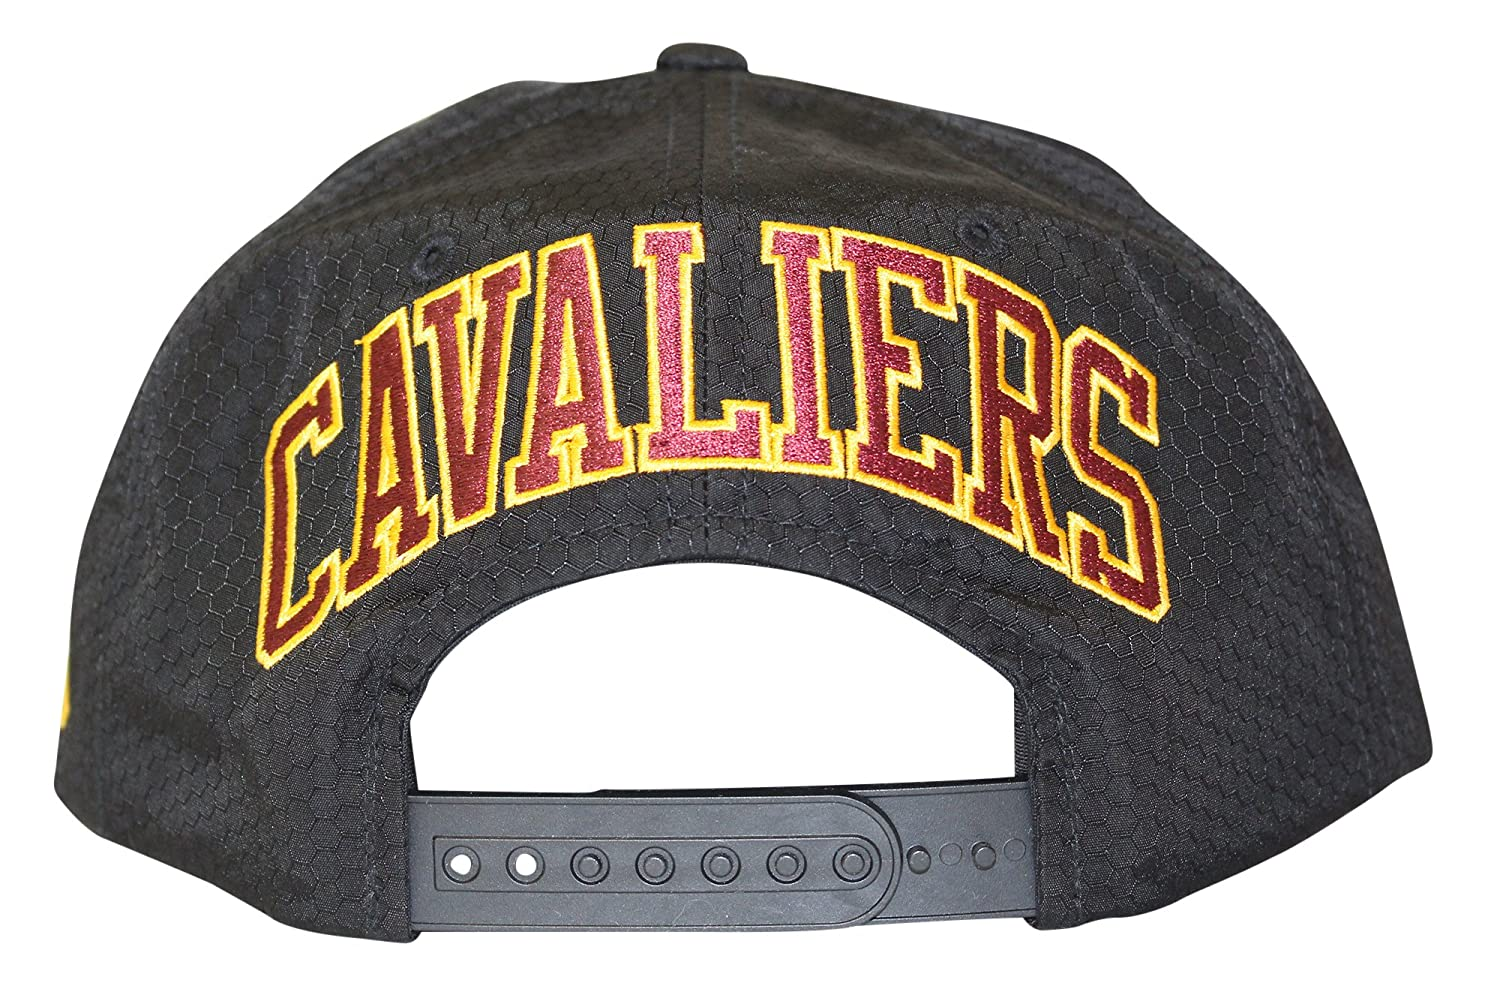 Amazon.com : Mitchell & Ness Mens NBA Cleveland Cavaliers Black Ripstop Honeycomb Snapback Hat : Sports & Outdoors